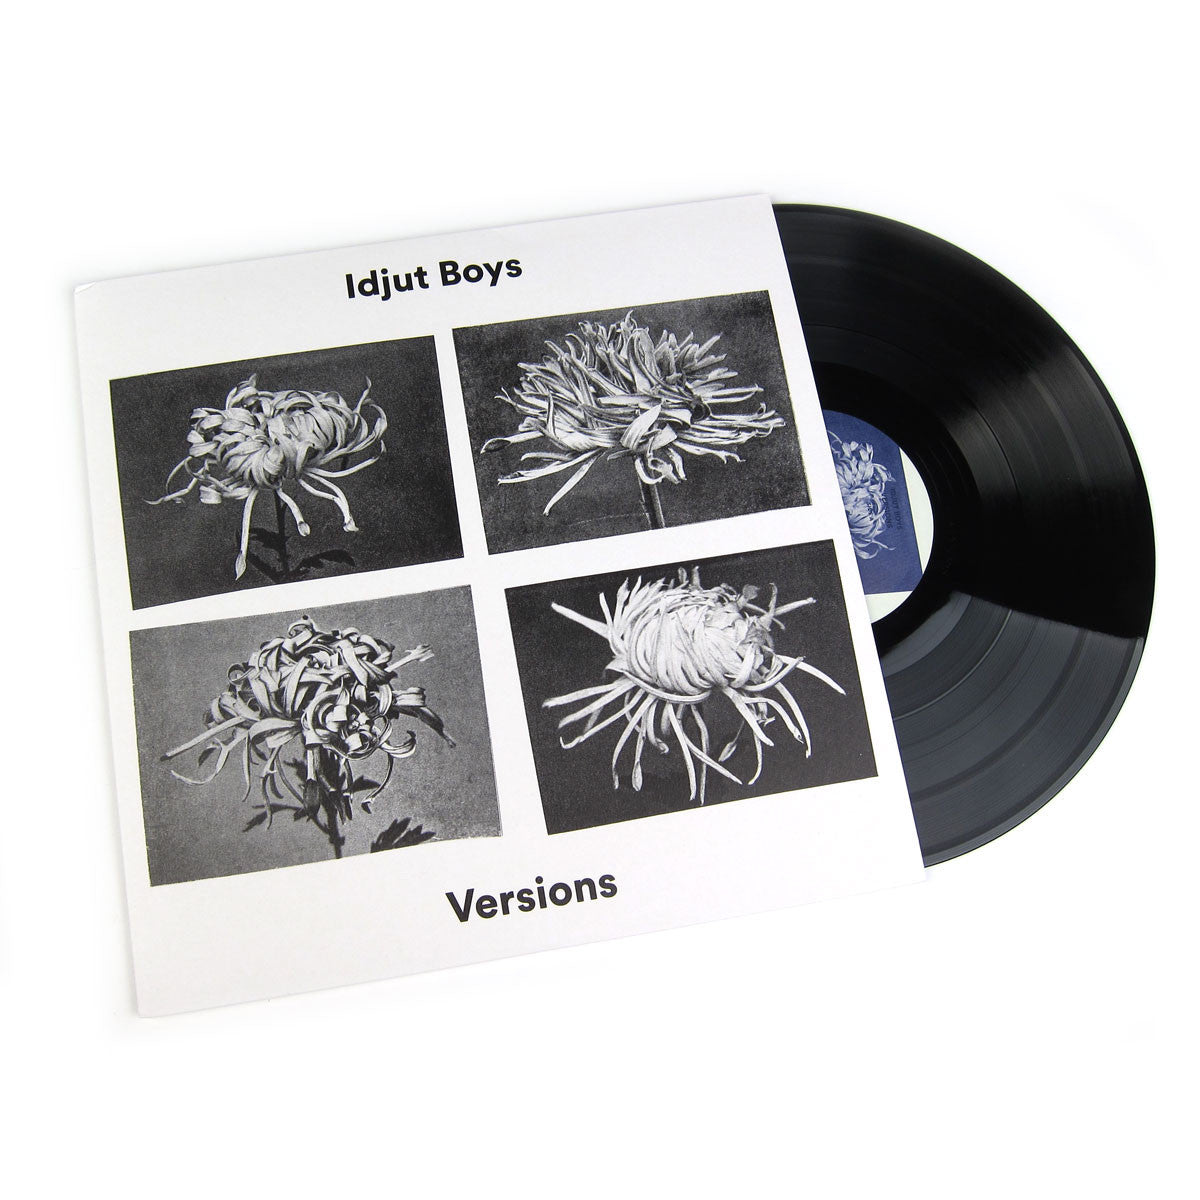 Idjut Boys: Versions Vinyl 2LP